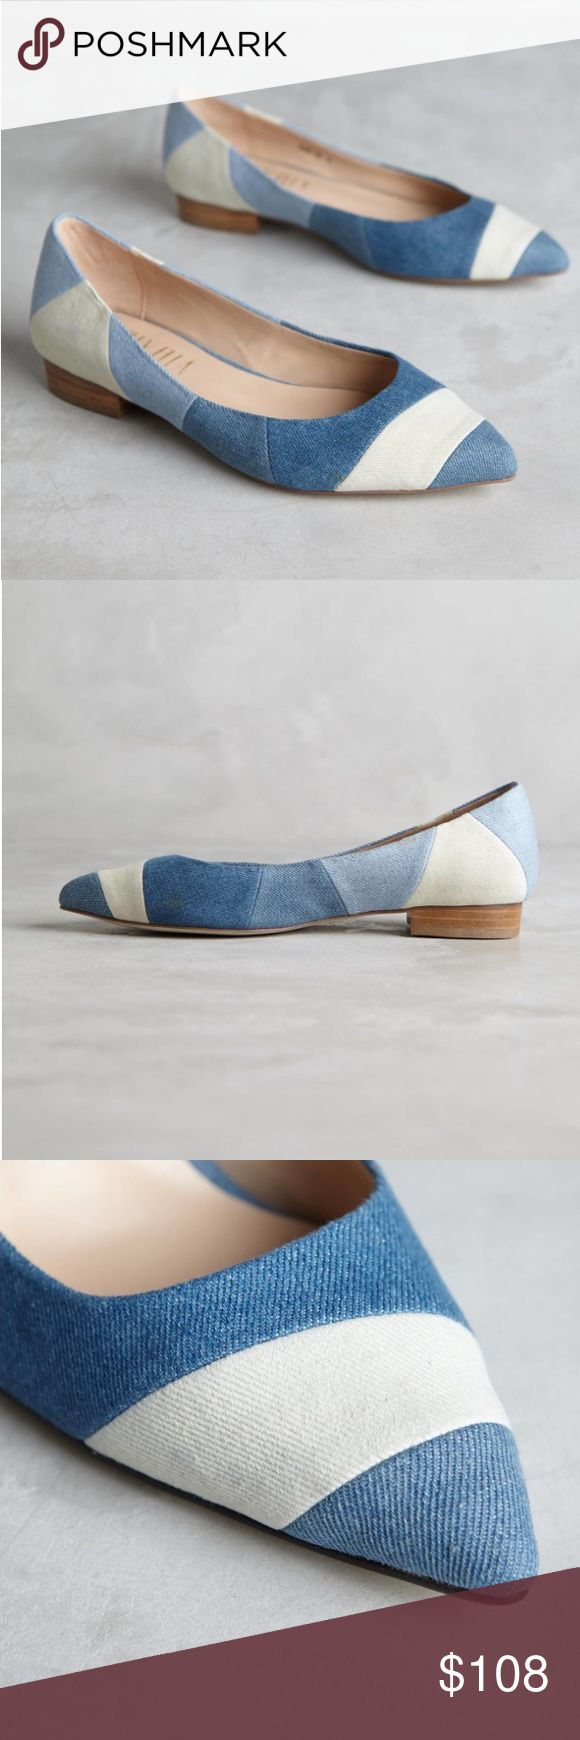 •Anthropologie• Billy Ella Patchwork Flats Denim patchwork flats with a pop of white evoke summer skies yet to come. From Billy Ella.  Fits true to size Cotton denim upper Leather insole Synthetic sole  In near new condition! Anthropologie Shoes Flats & Loafers